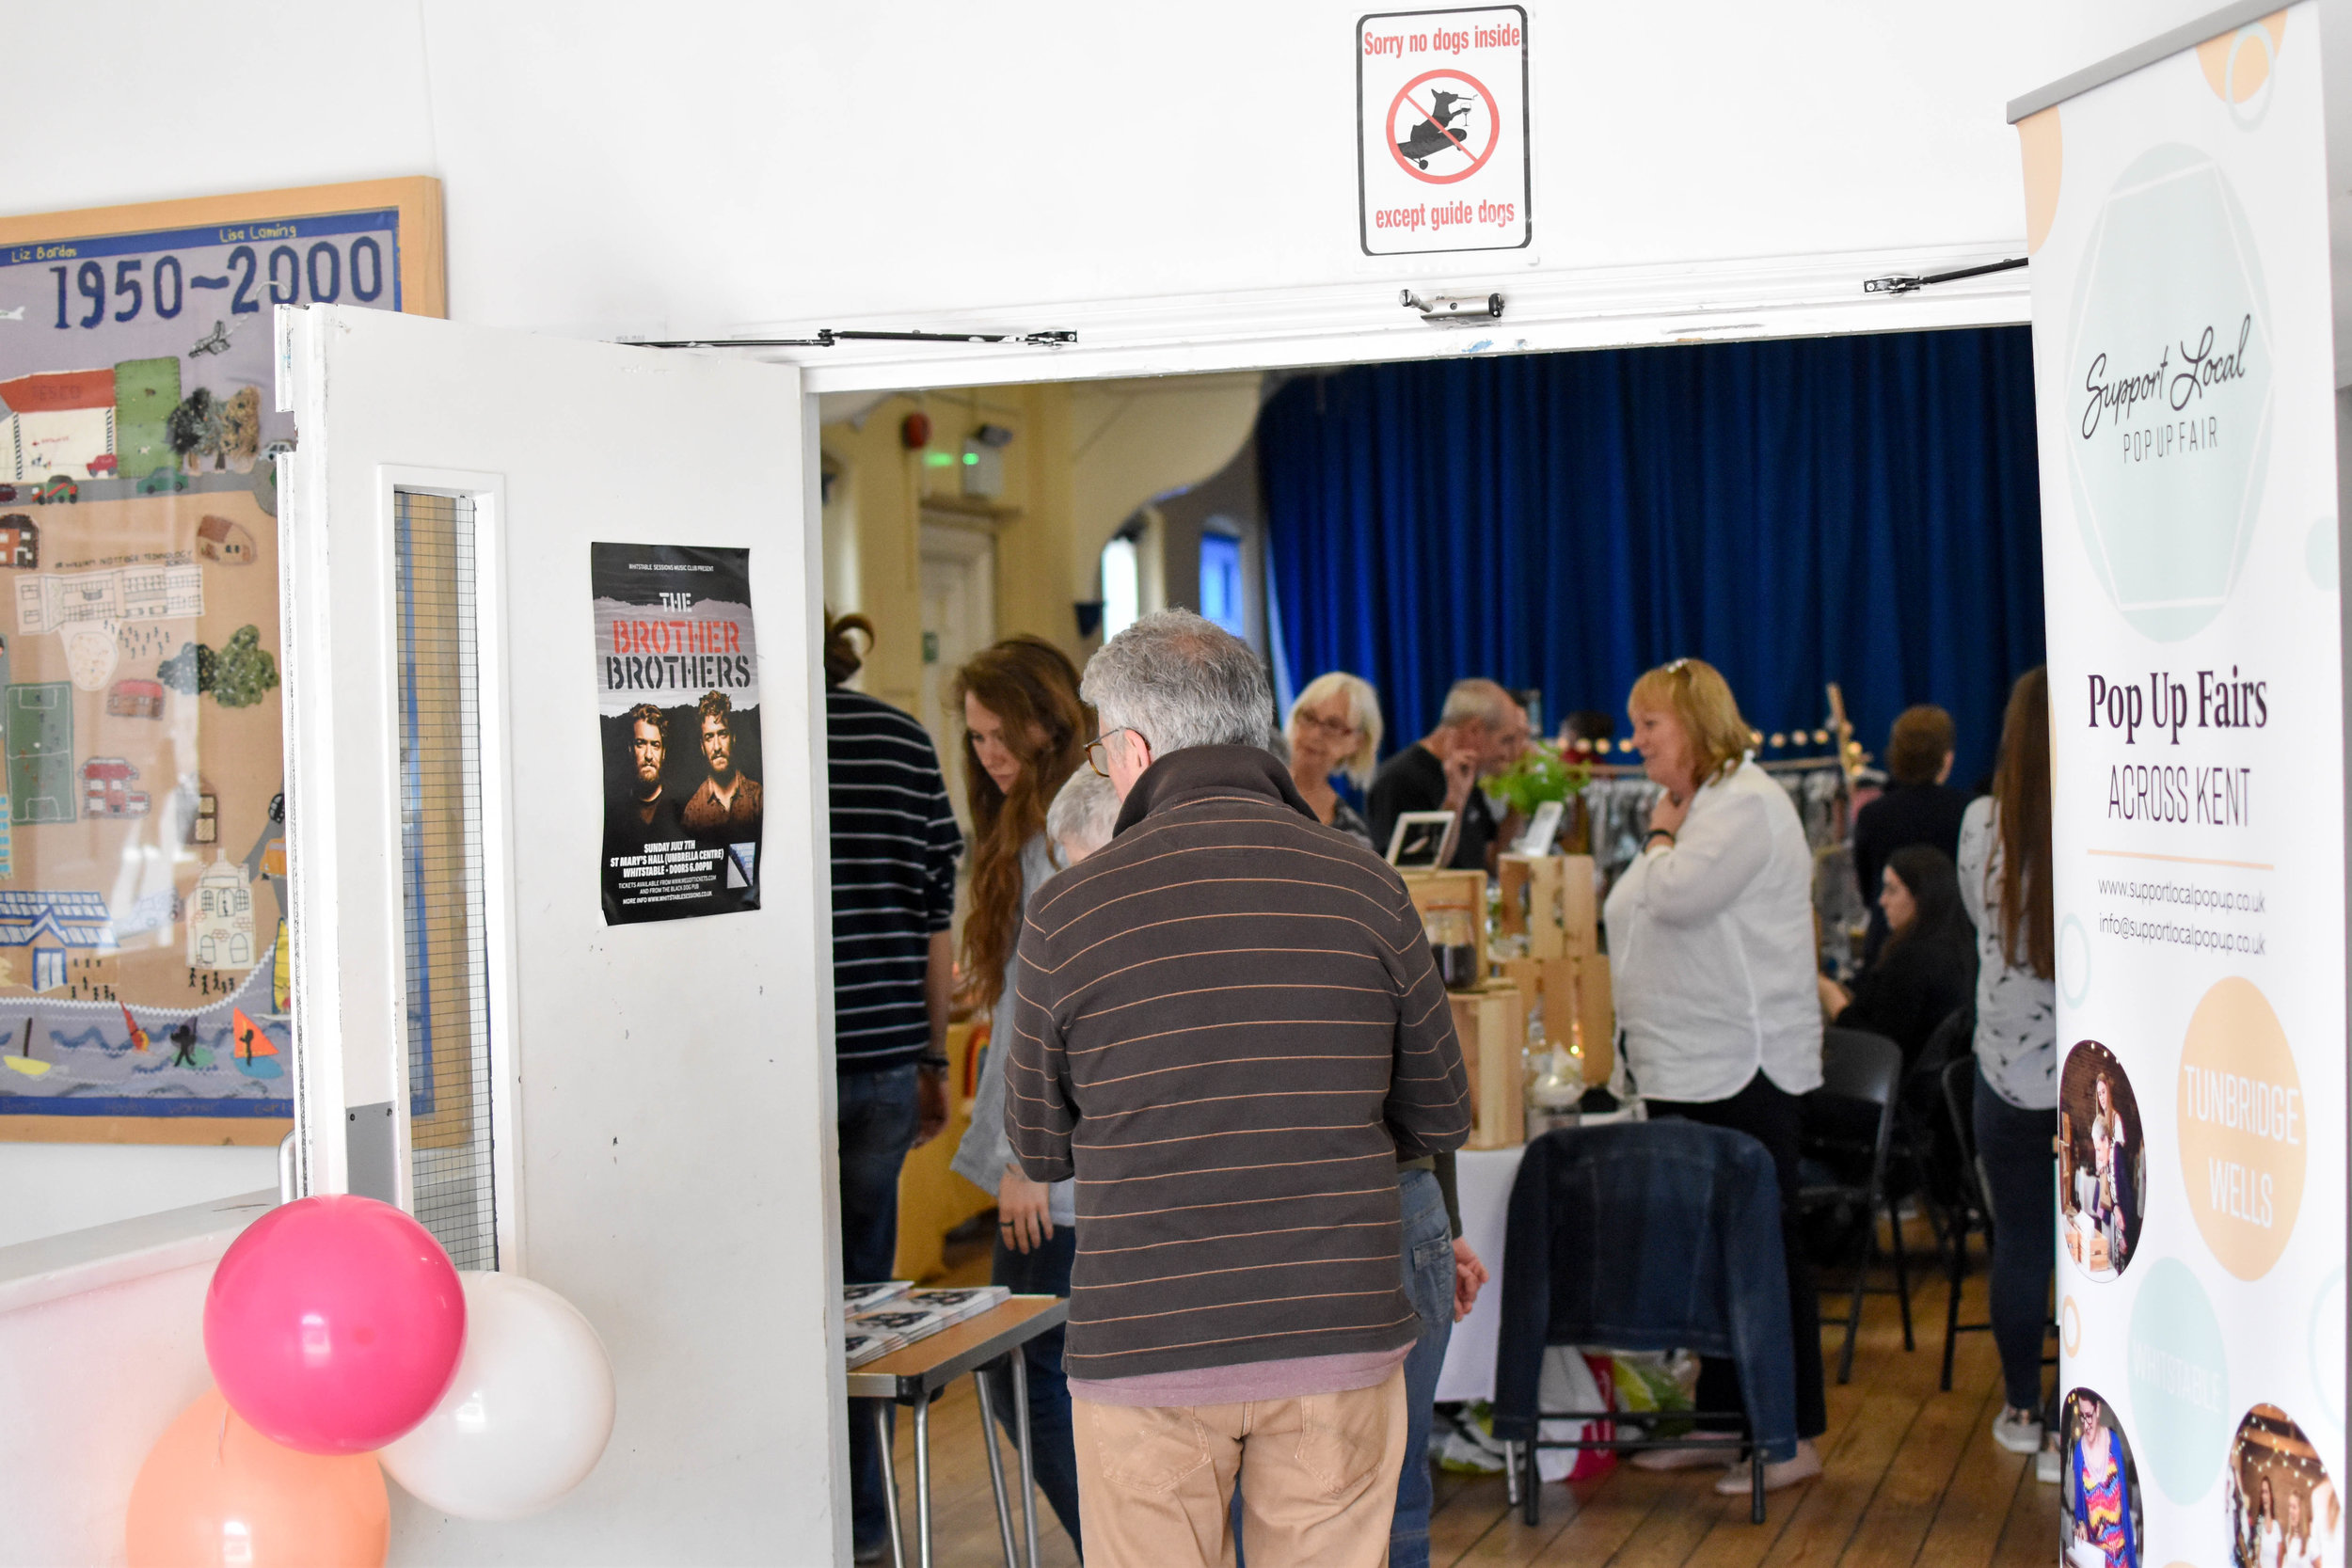 support-local-pop-up-market-fair-shopping-kent-whitstable.jpg09.jpg